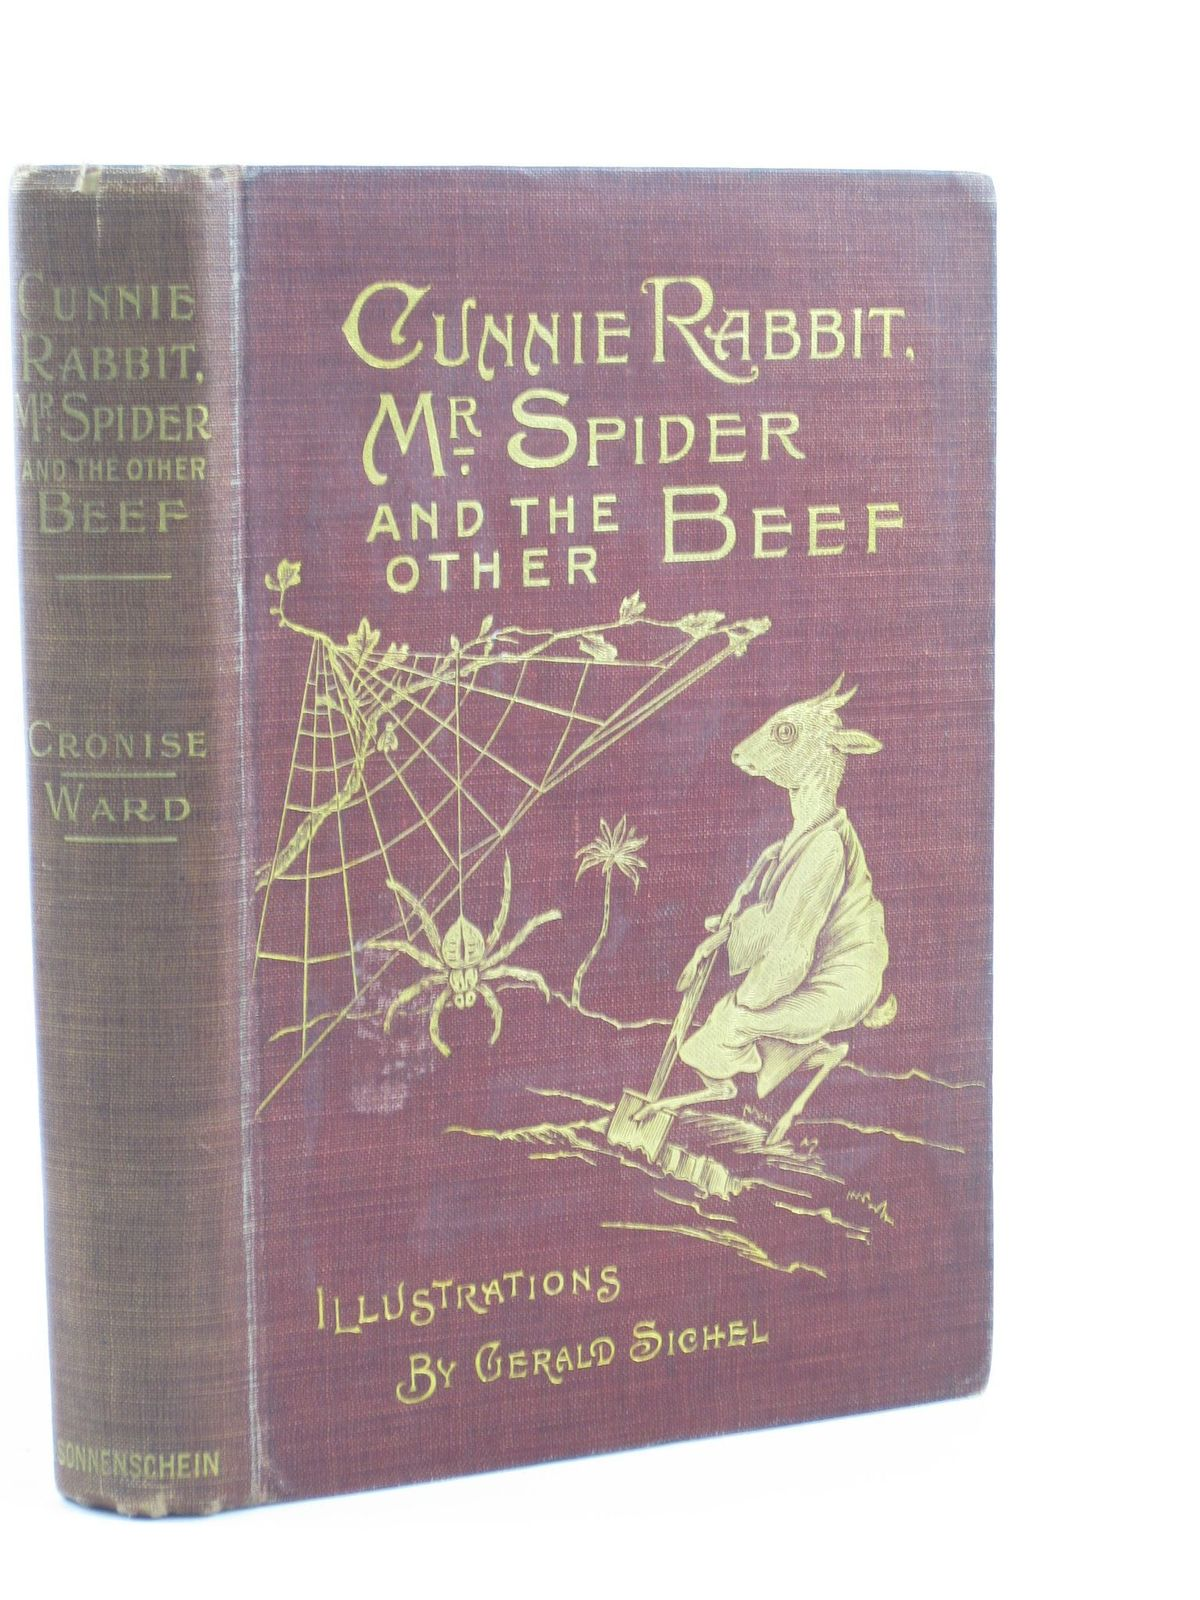 Photo of CUNNIE RABBIT, MR. SPIDER AND THE OTHER BEEF written by Cronise, Florence M.<br />Ward, Henry W. illustrated by Sichel, Gerald published by Swan Sonnenschein &amp; Co. Ltd. (STOCK CODE: 1501742)  for sale by Stella & Rose's Books